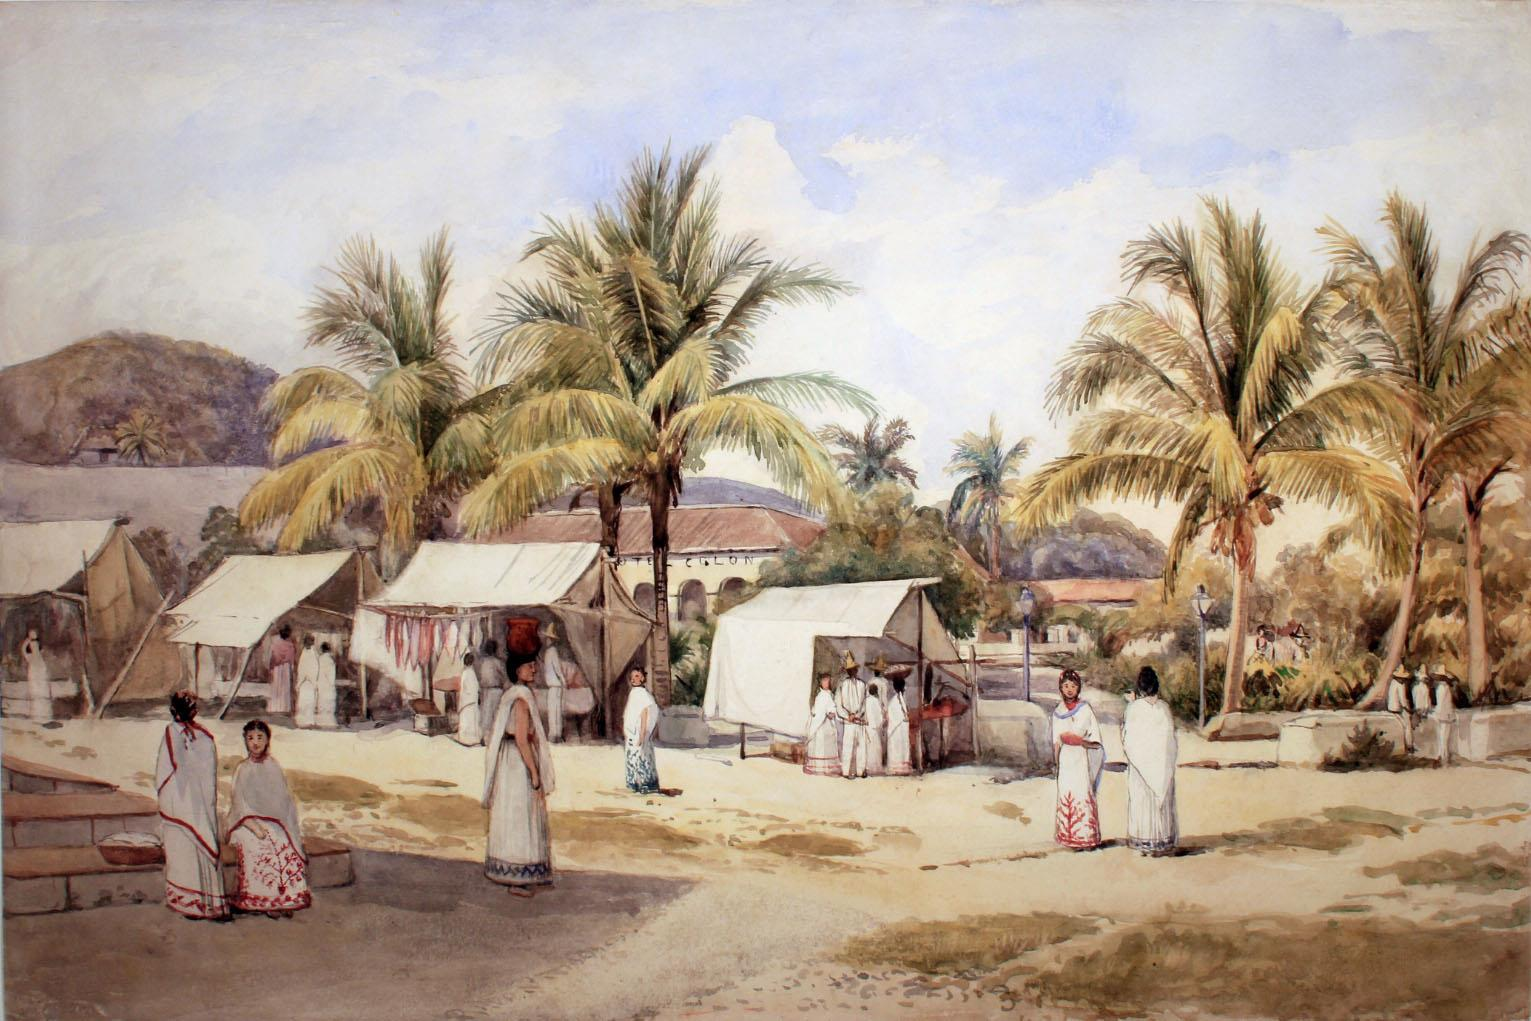 Adela Catherine Breton - The Market Place at Papantla - c1894